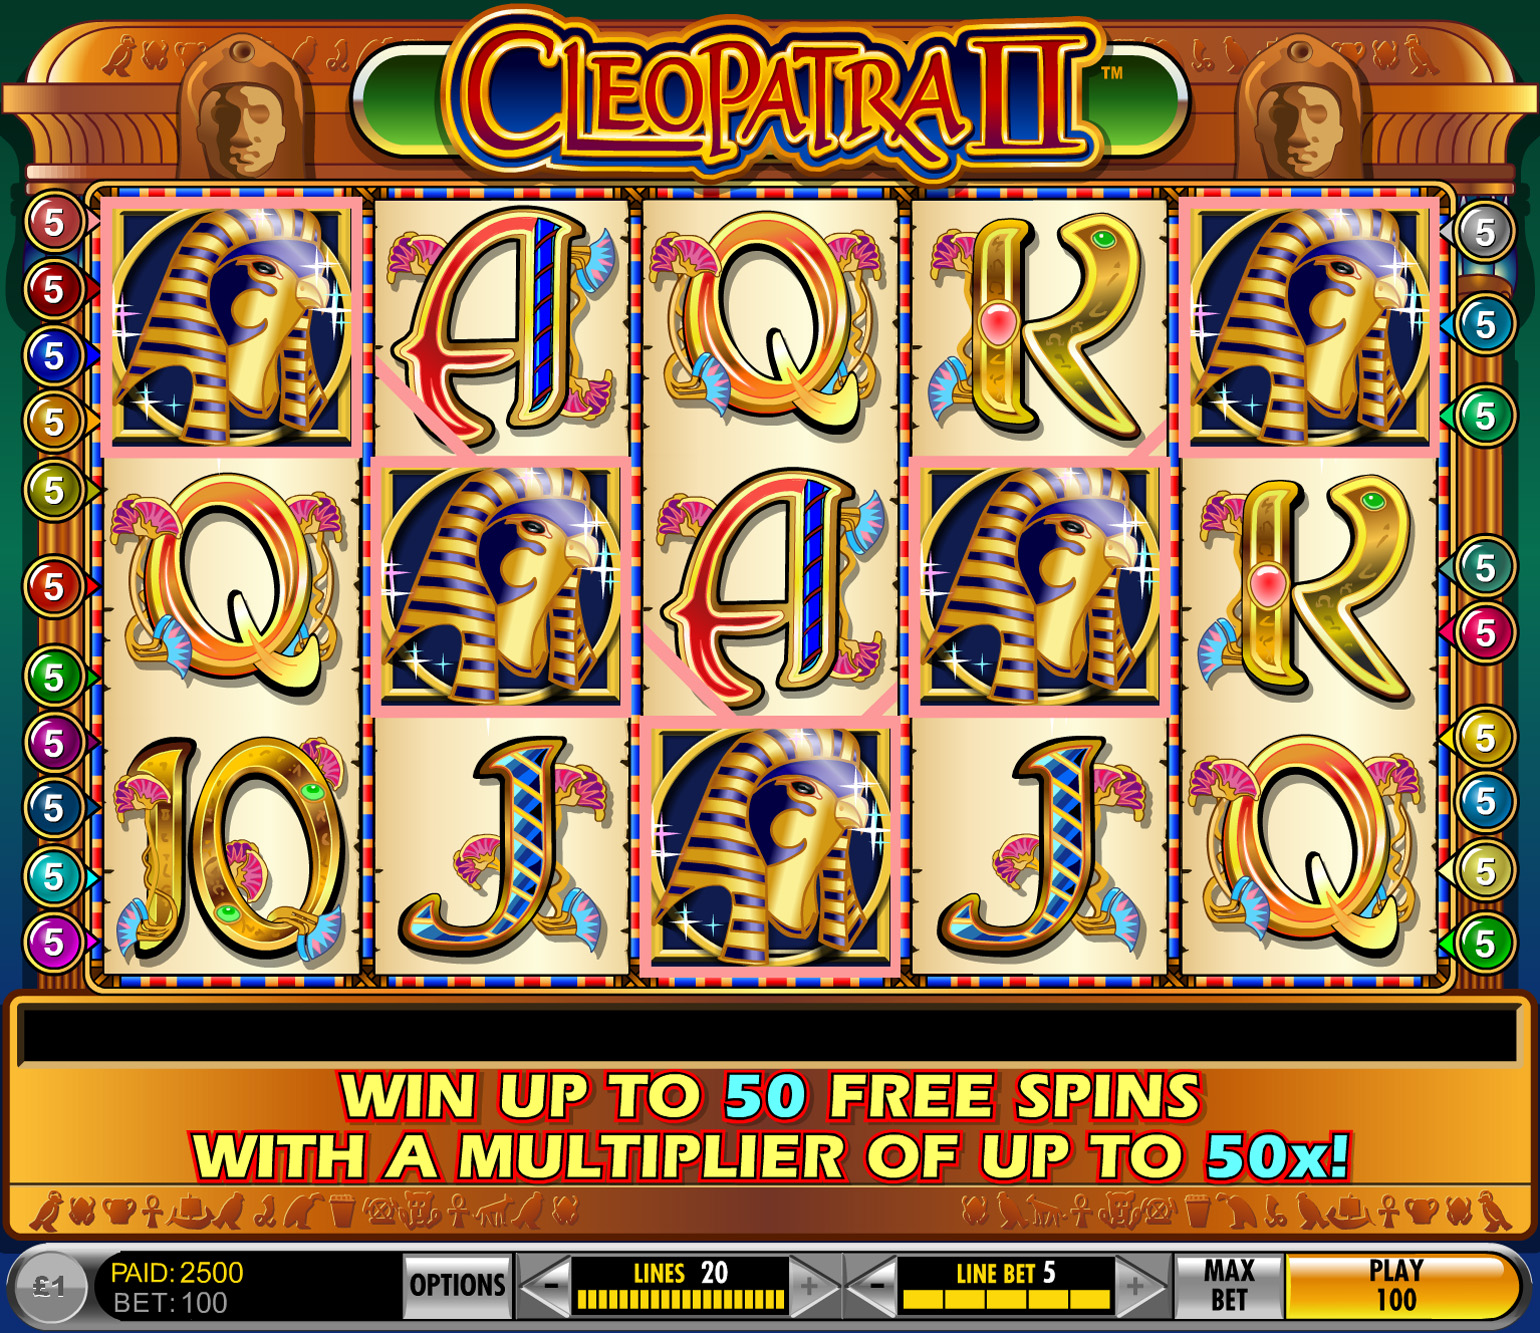 Free online casino slots games for fun